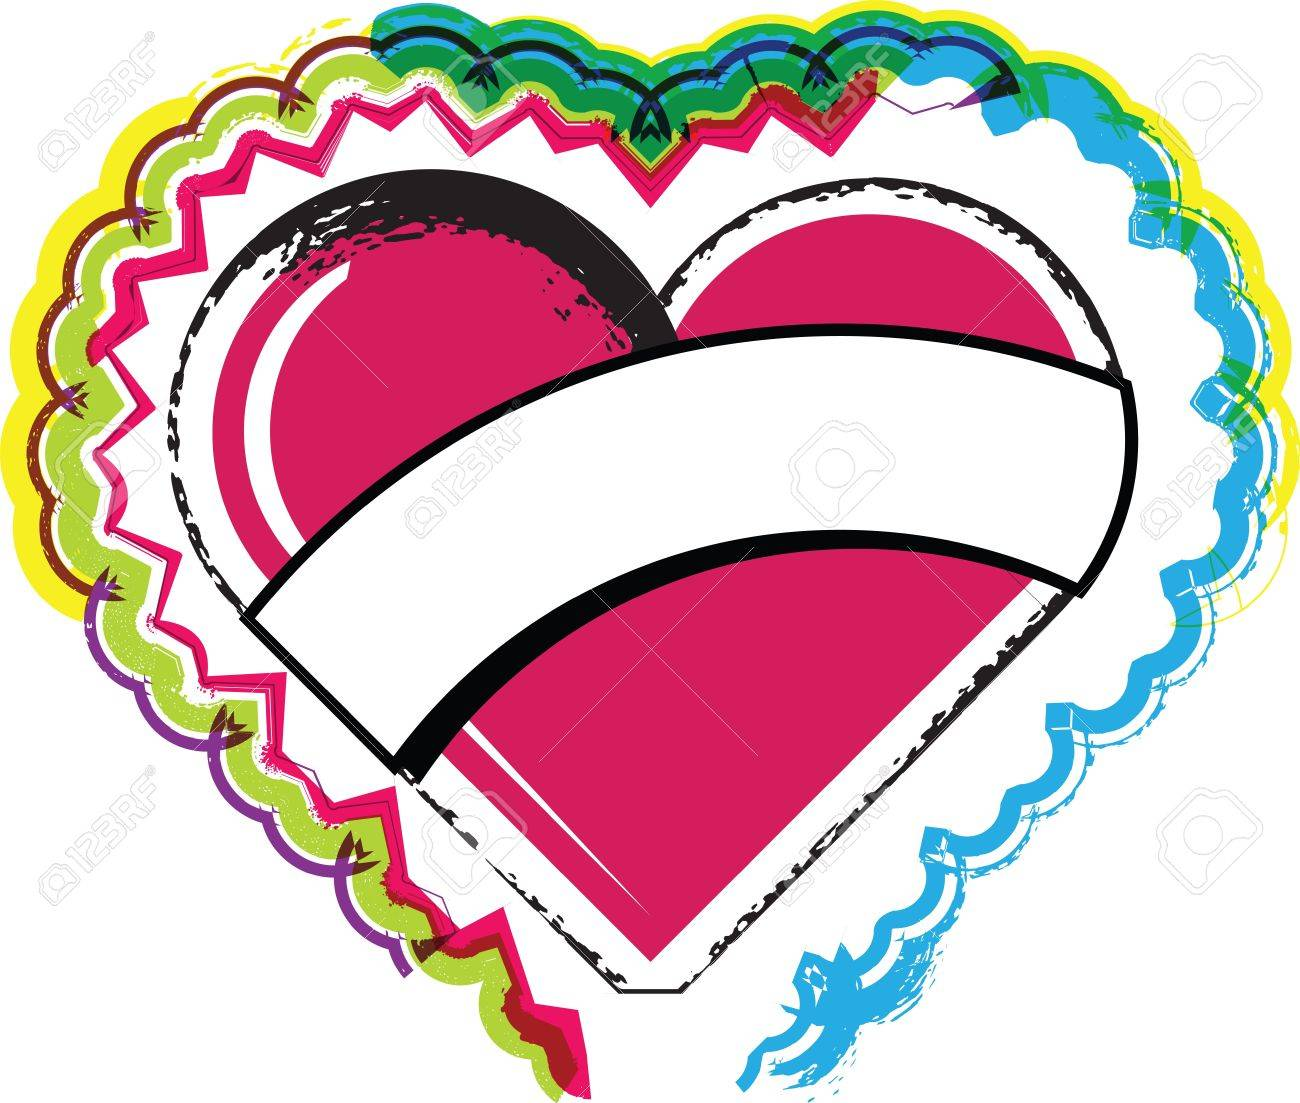 Heart Stock Vector - 15778811